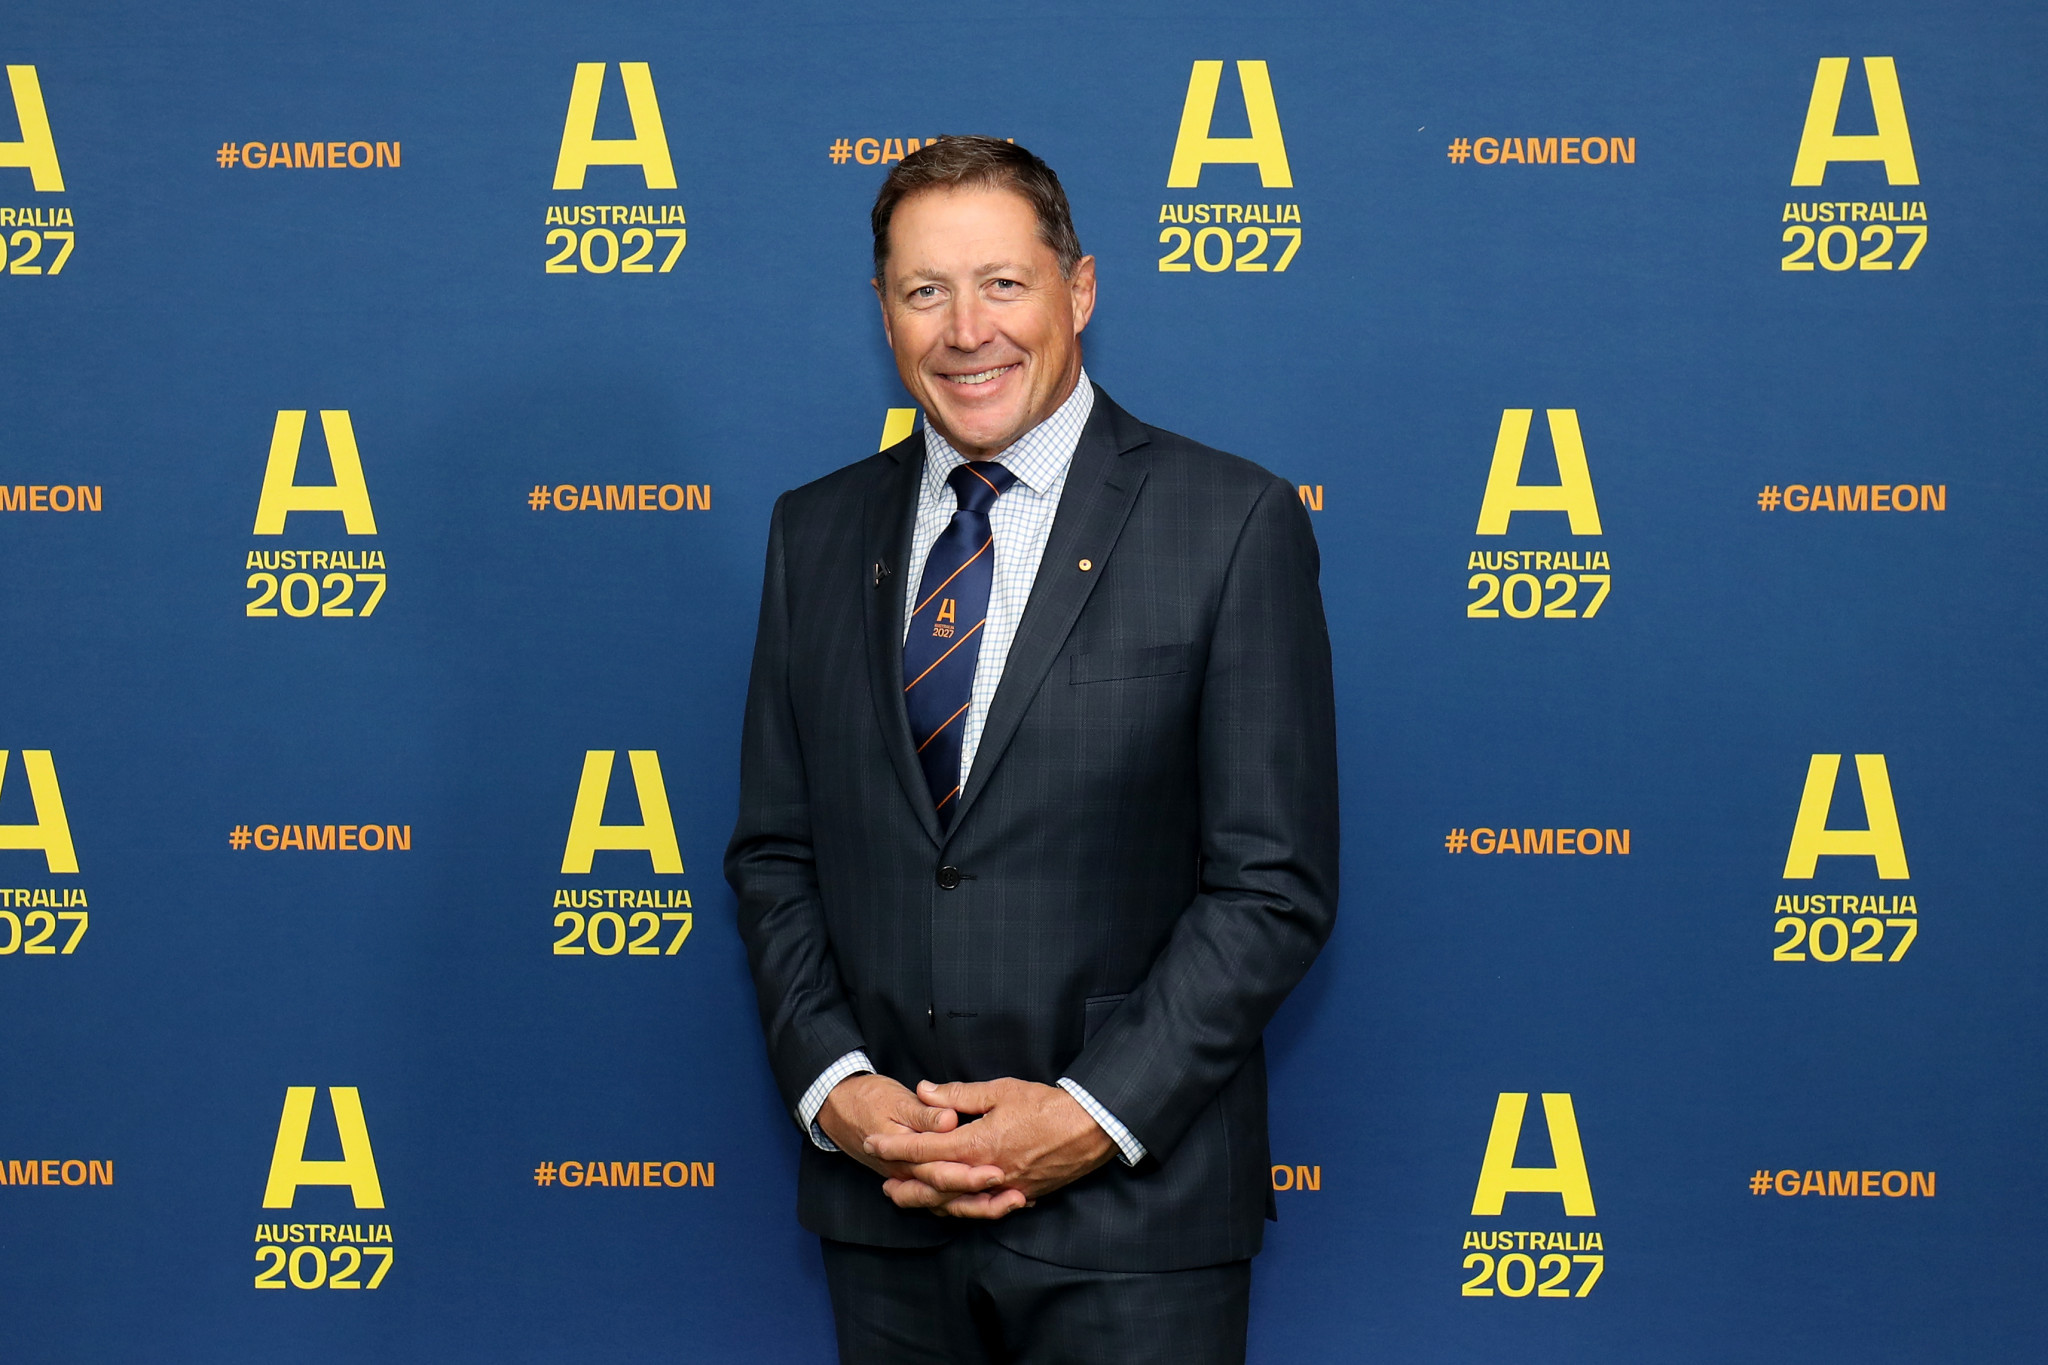 High-profile Australian delegation to travel to UK to strengthen 2027 Rugby World Cup bid